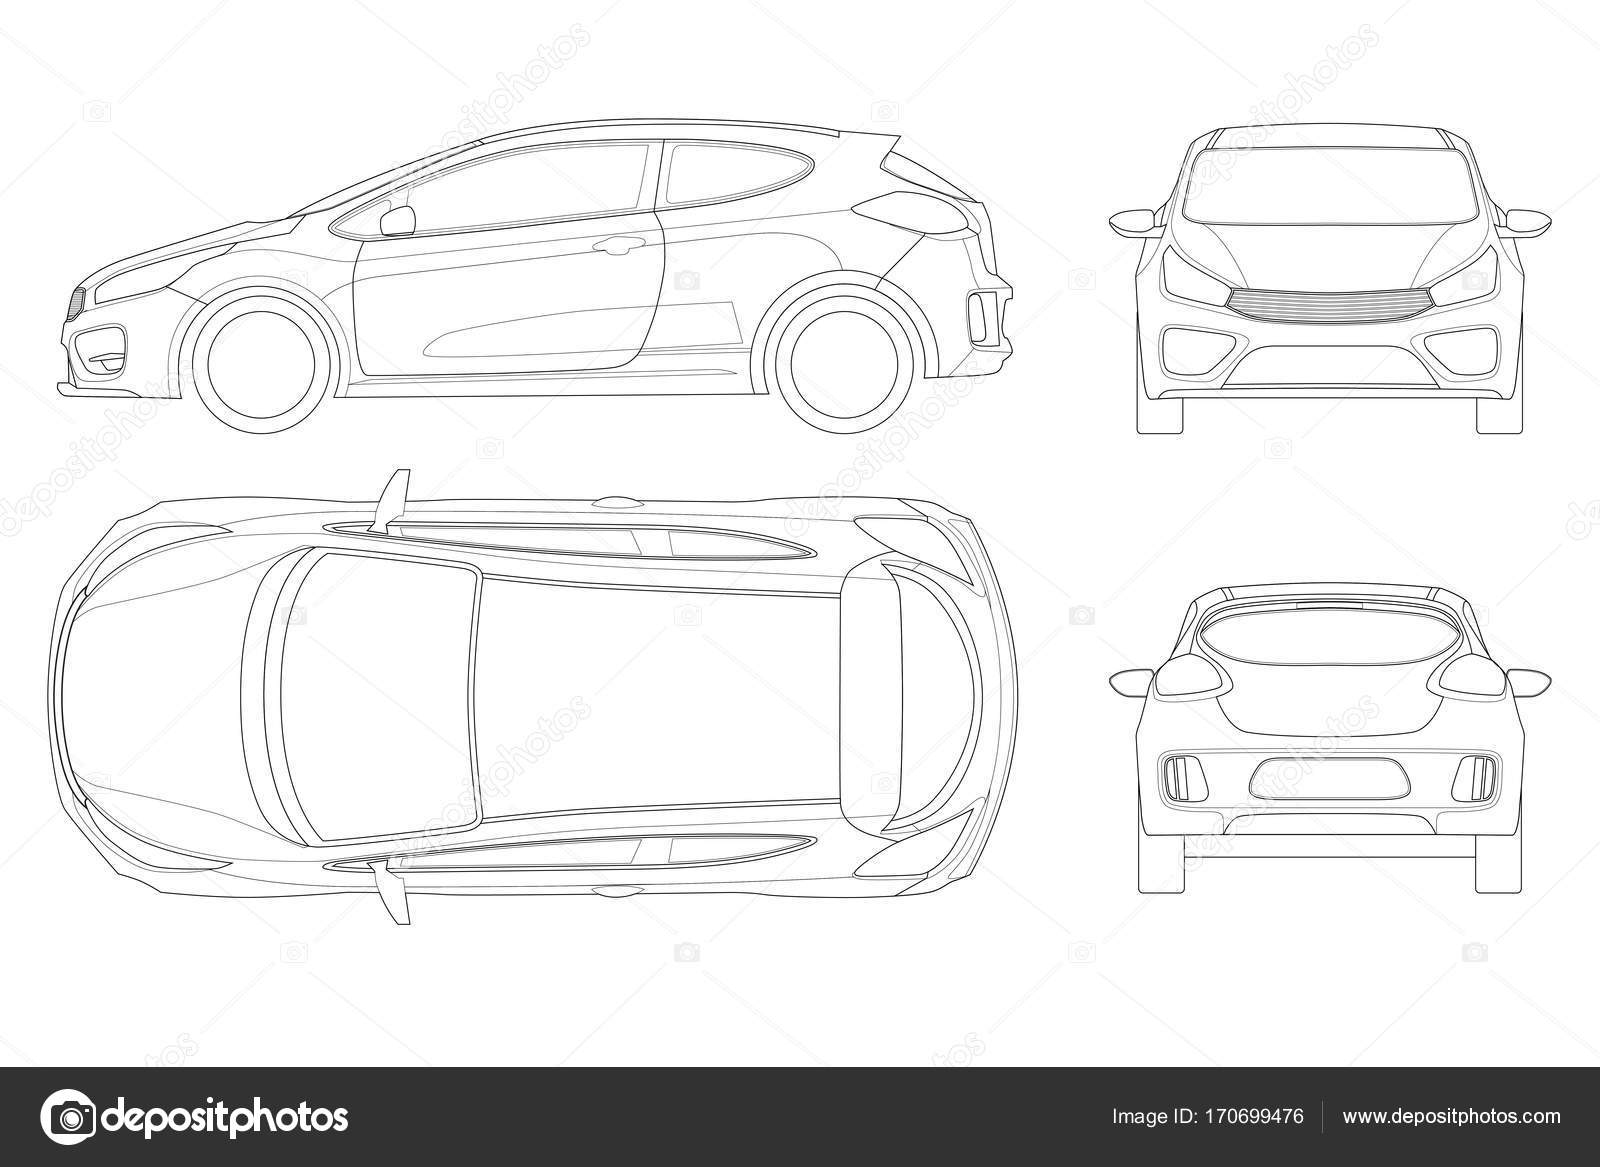 Sportcar Or Hatchback Vehicle Suv Car Set On Outline